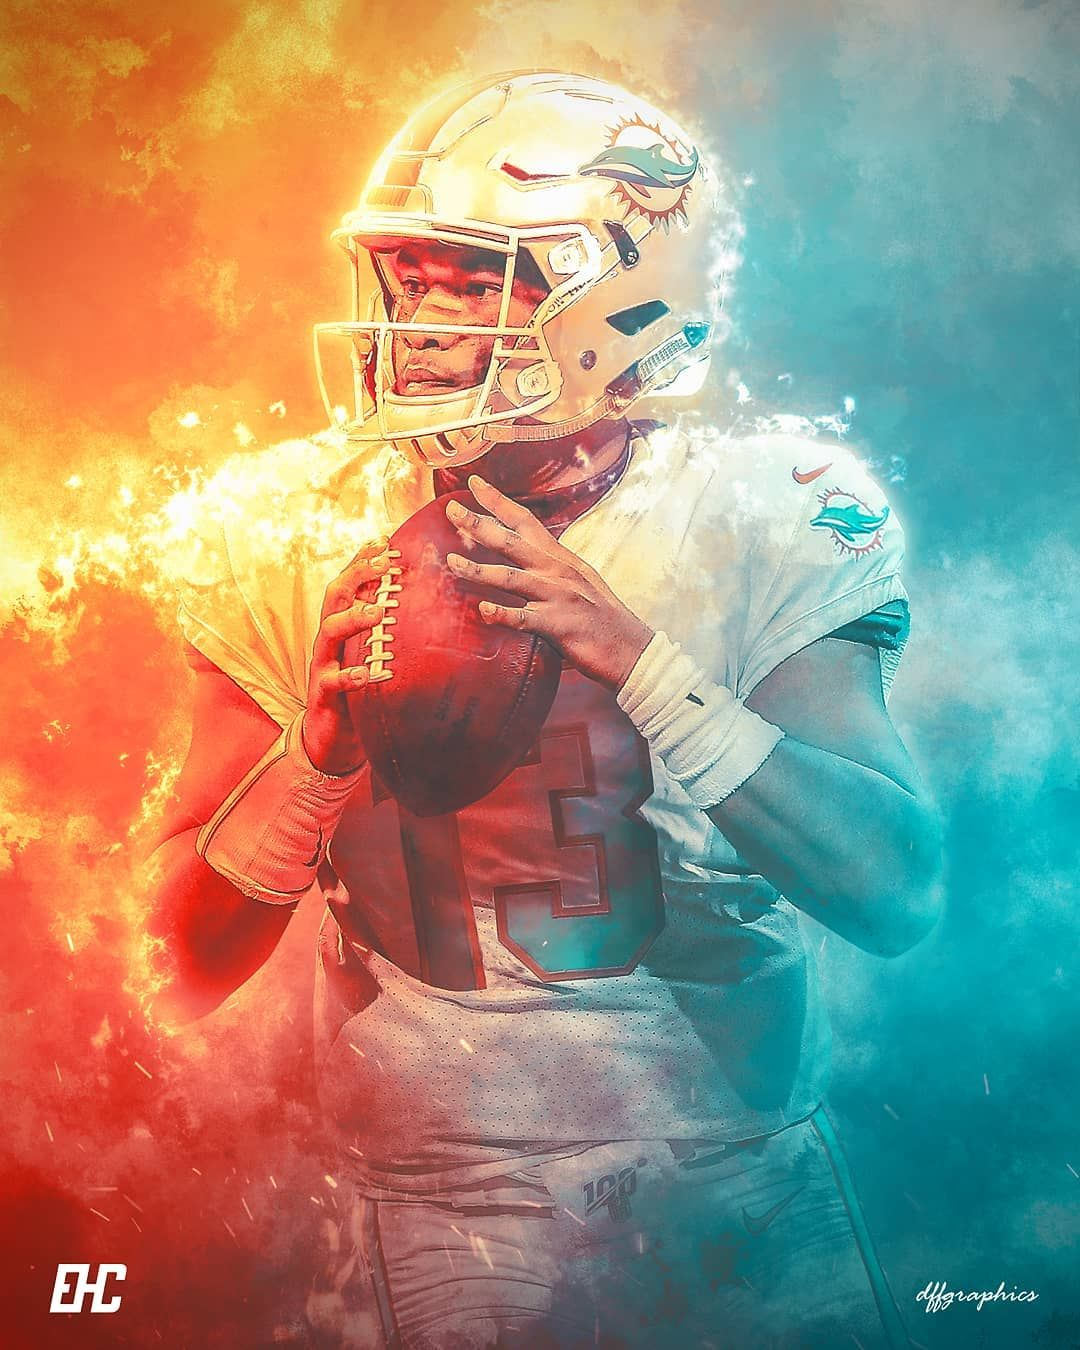 Will Tua Tagovailoa End Up On The Miami Dolphins Next Year Collab With The Homie Ehcartwork Nfl Miami Dolphins Wallpaper Miami Dolphins Dolphins Football